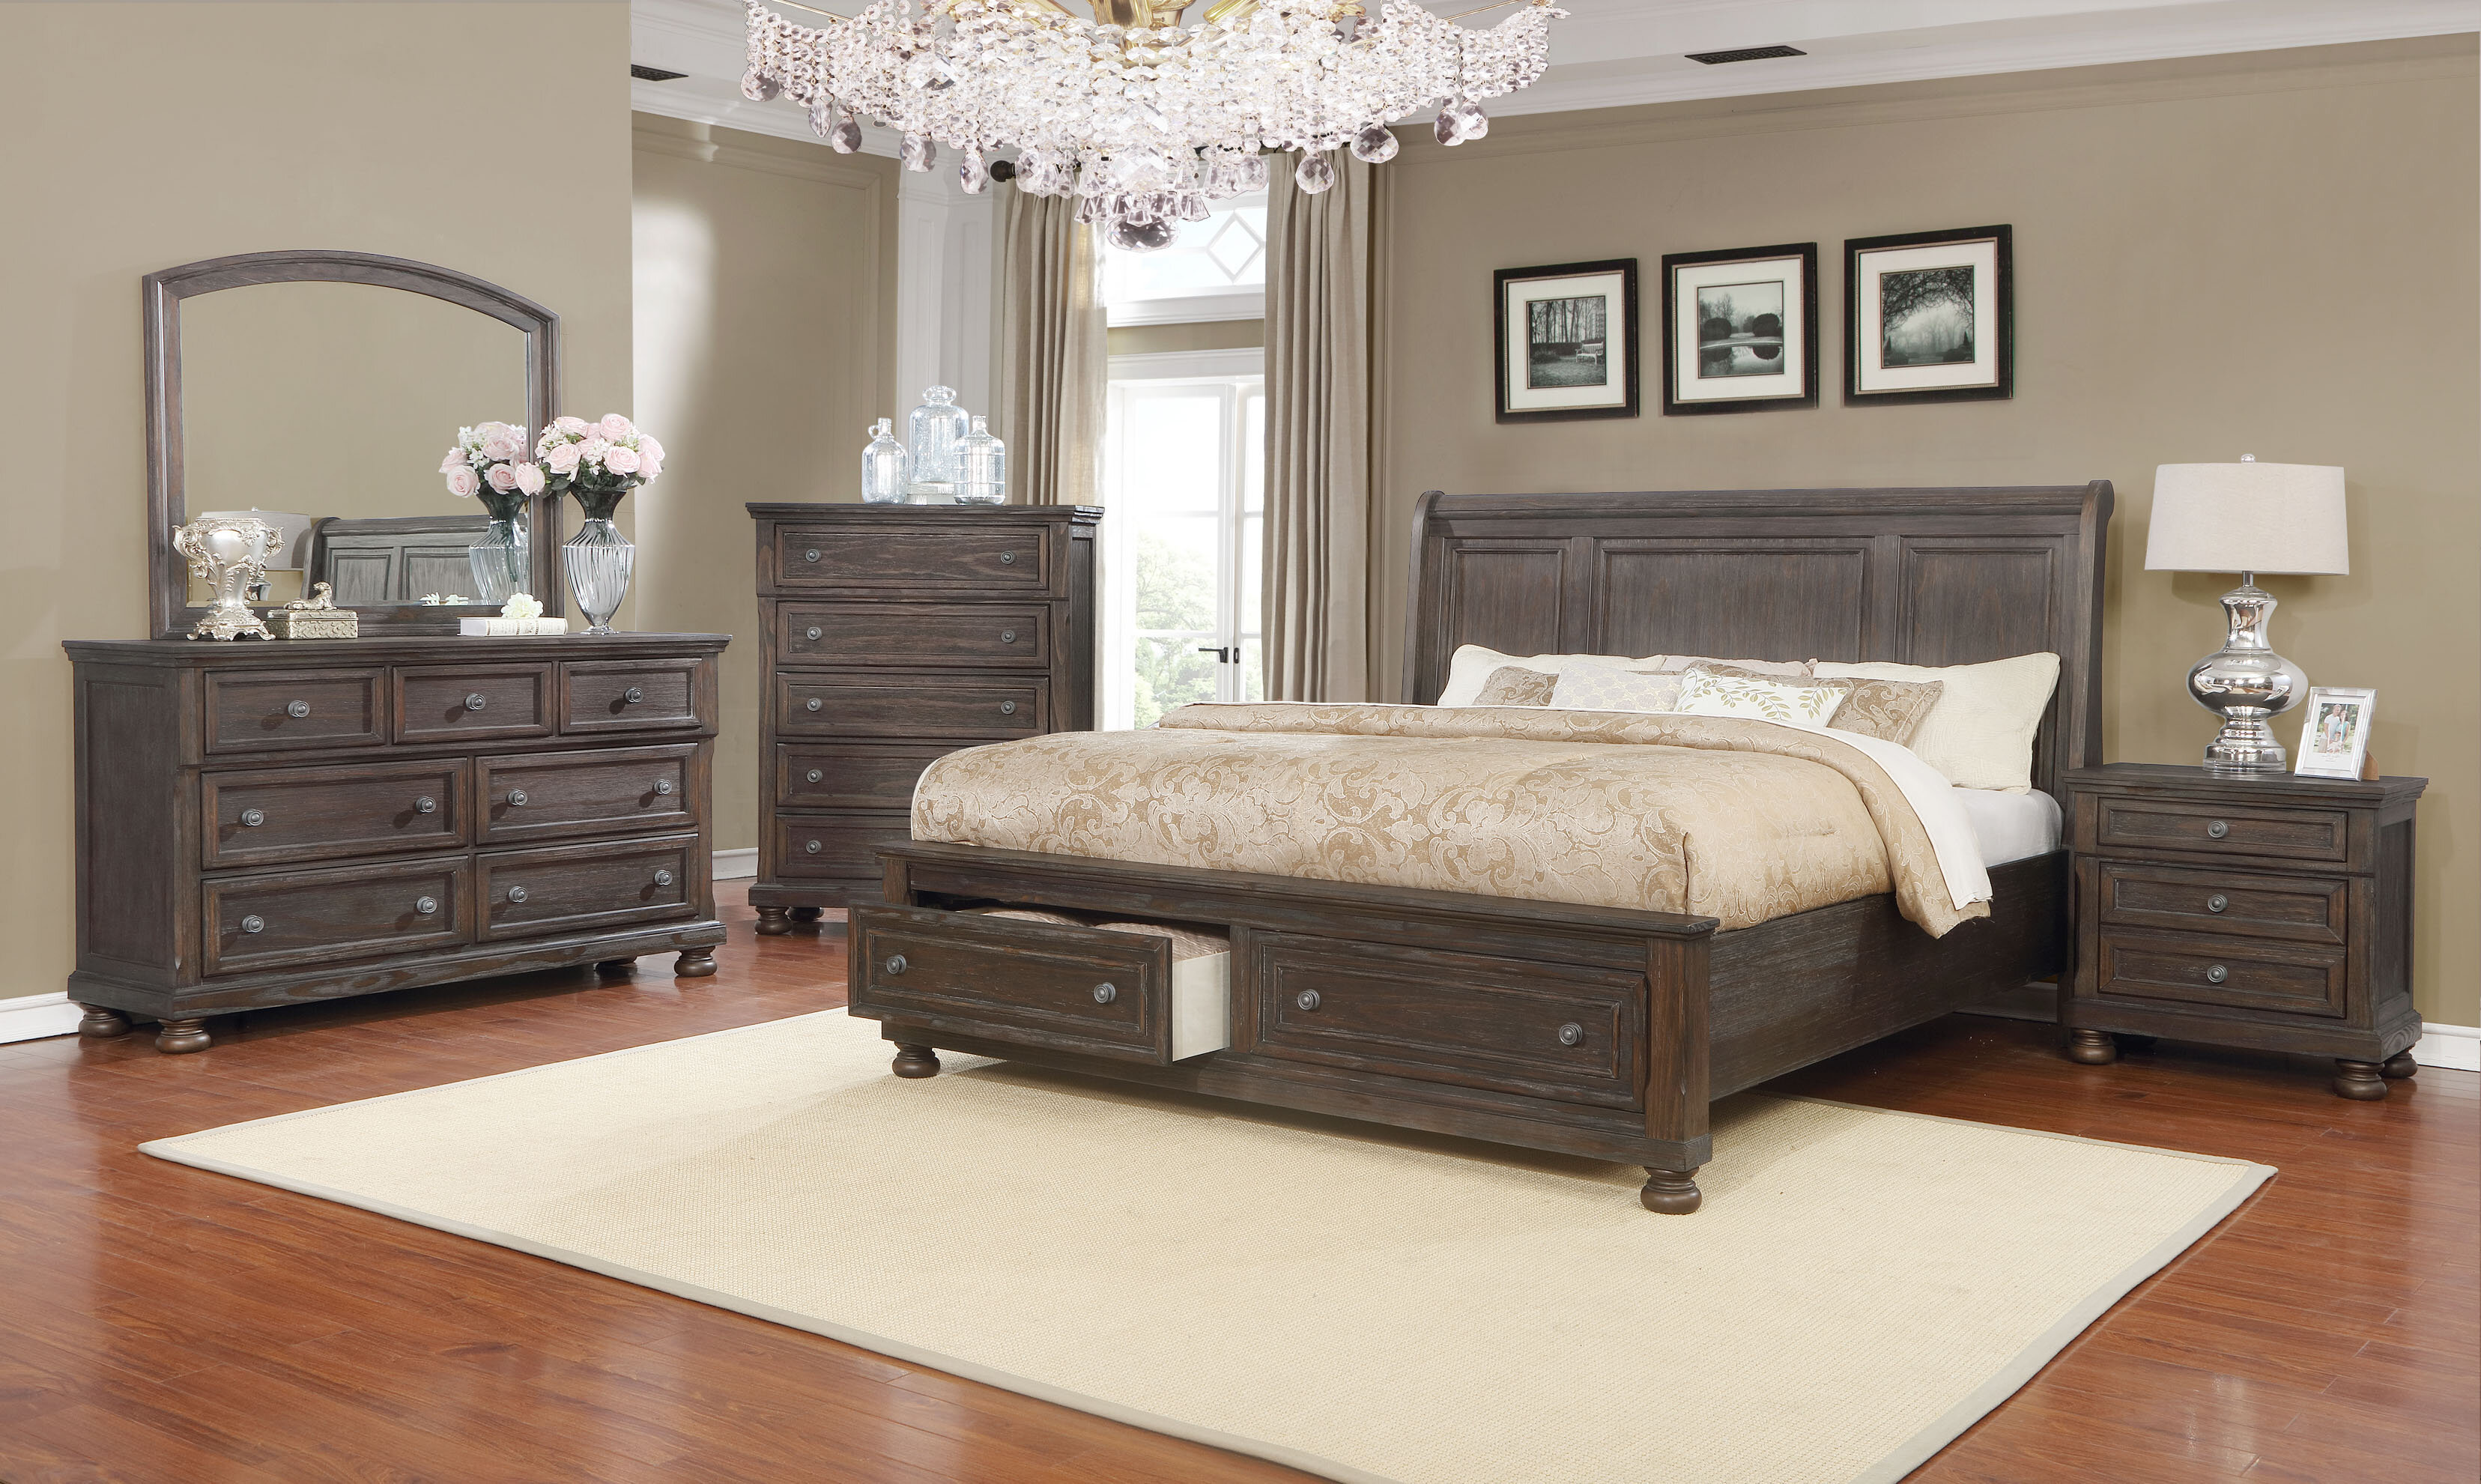 Mapes Queen Sleigh 4 Piece Bedroom Set